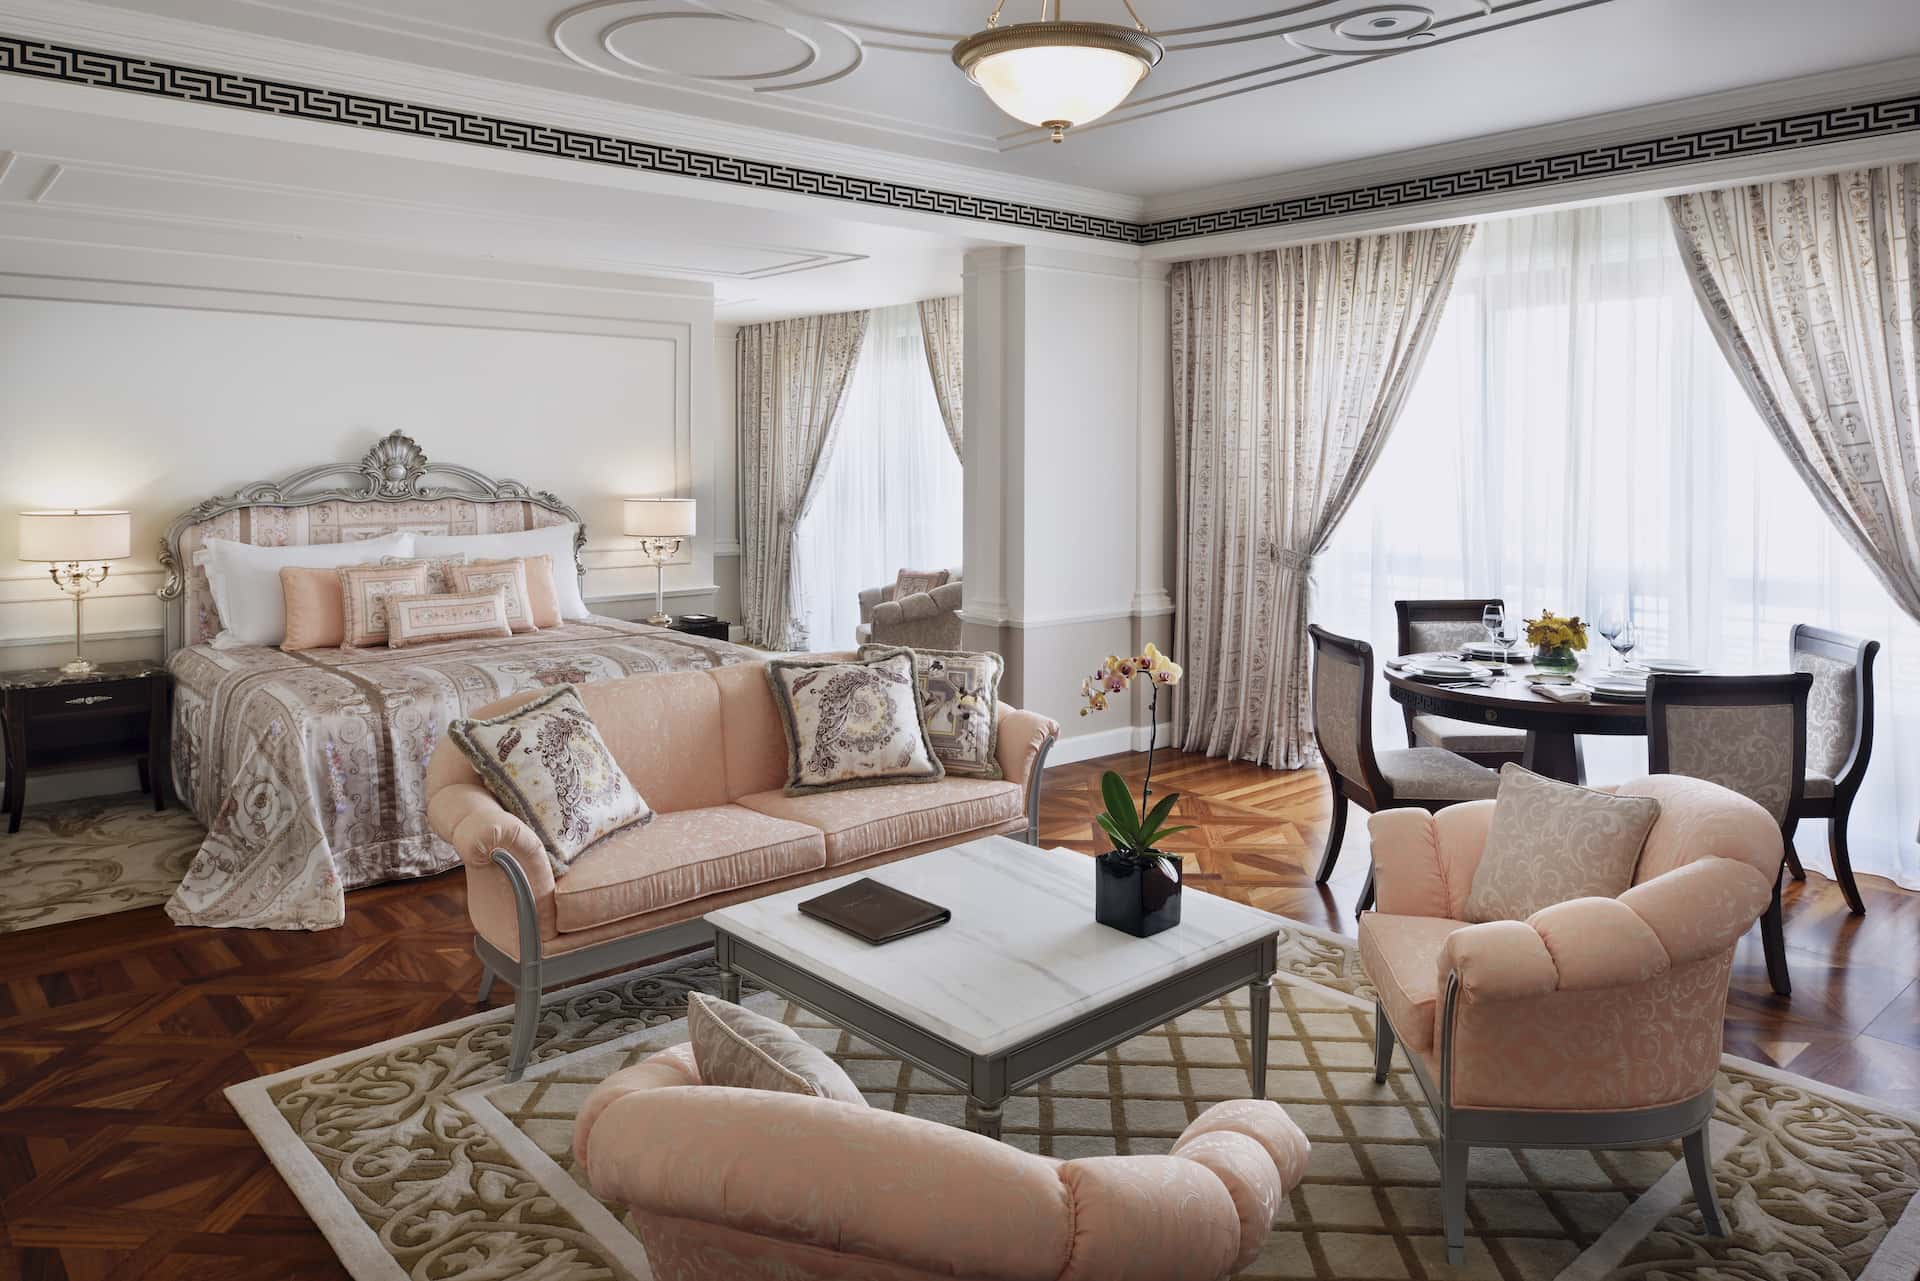 Executive Suite Palazzo Versace Дубай, фото